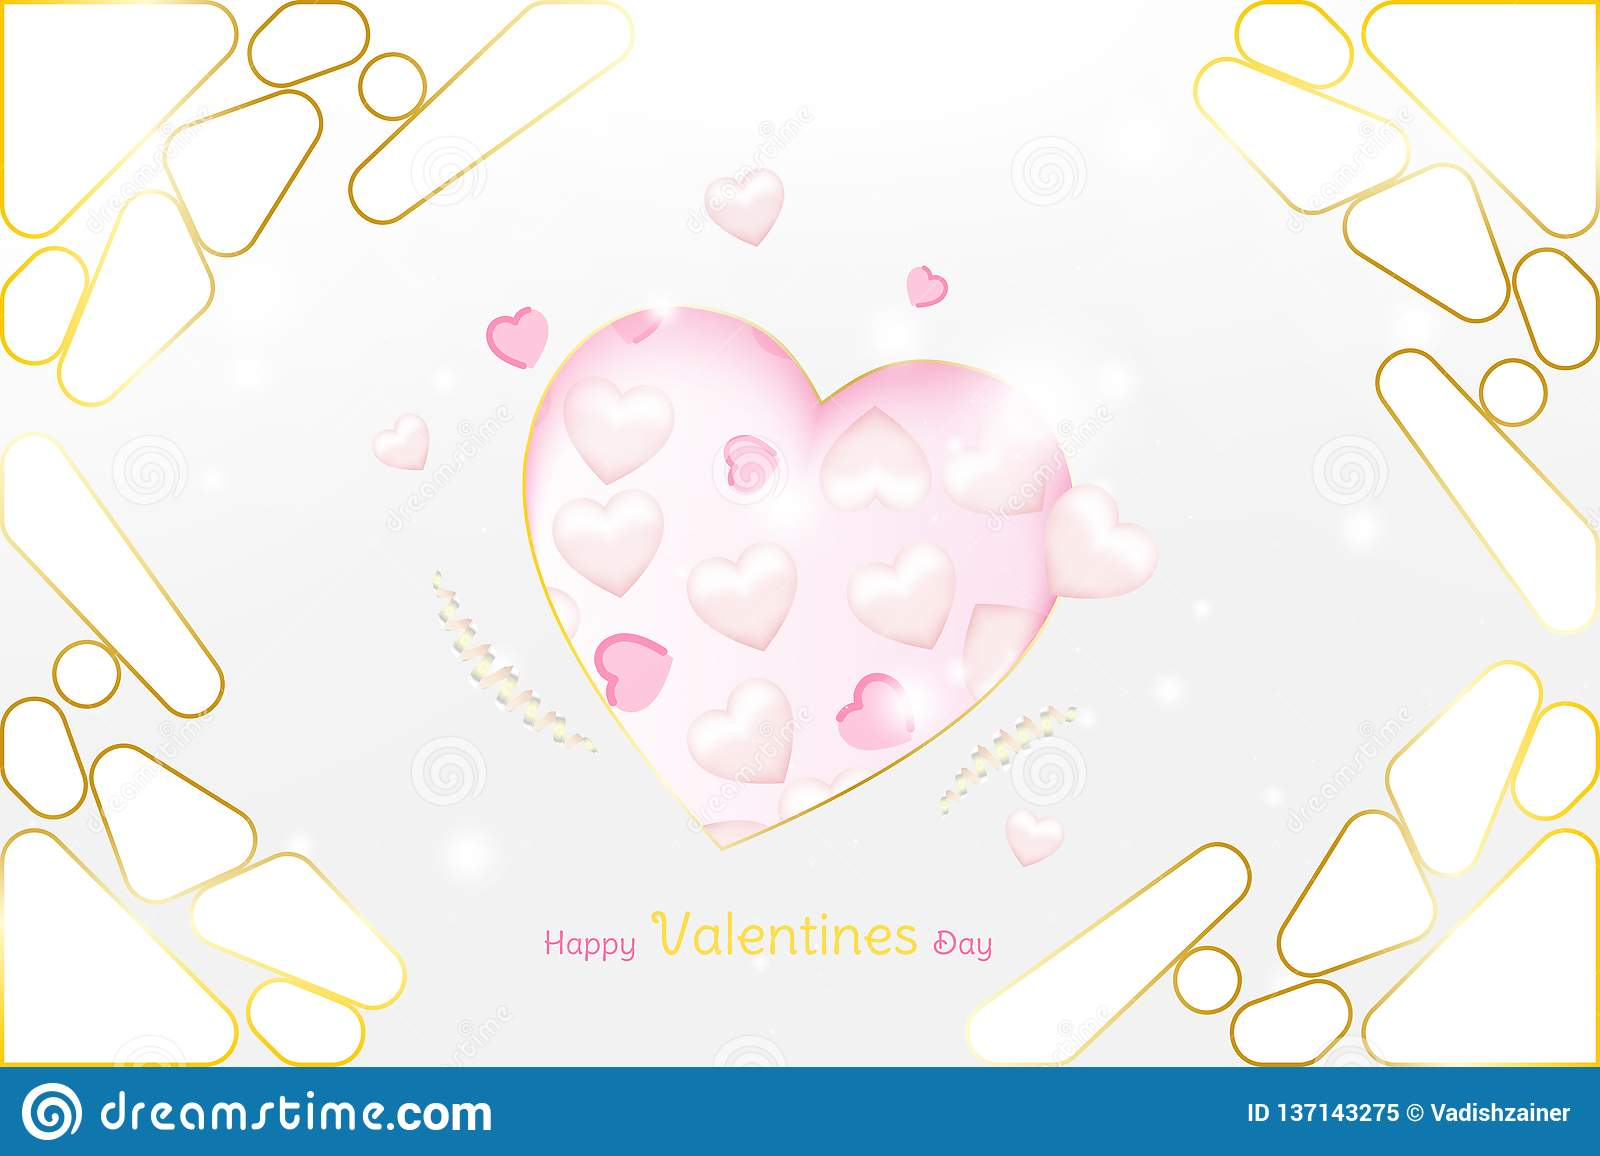 Valentine Day greeting card luxury template. Celebration concept with Pink hearts and gold elements on background with